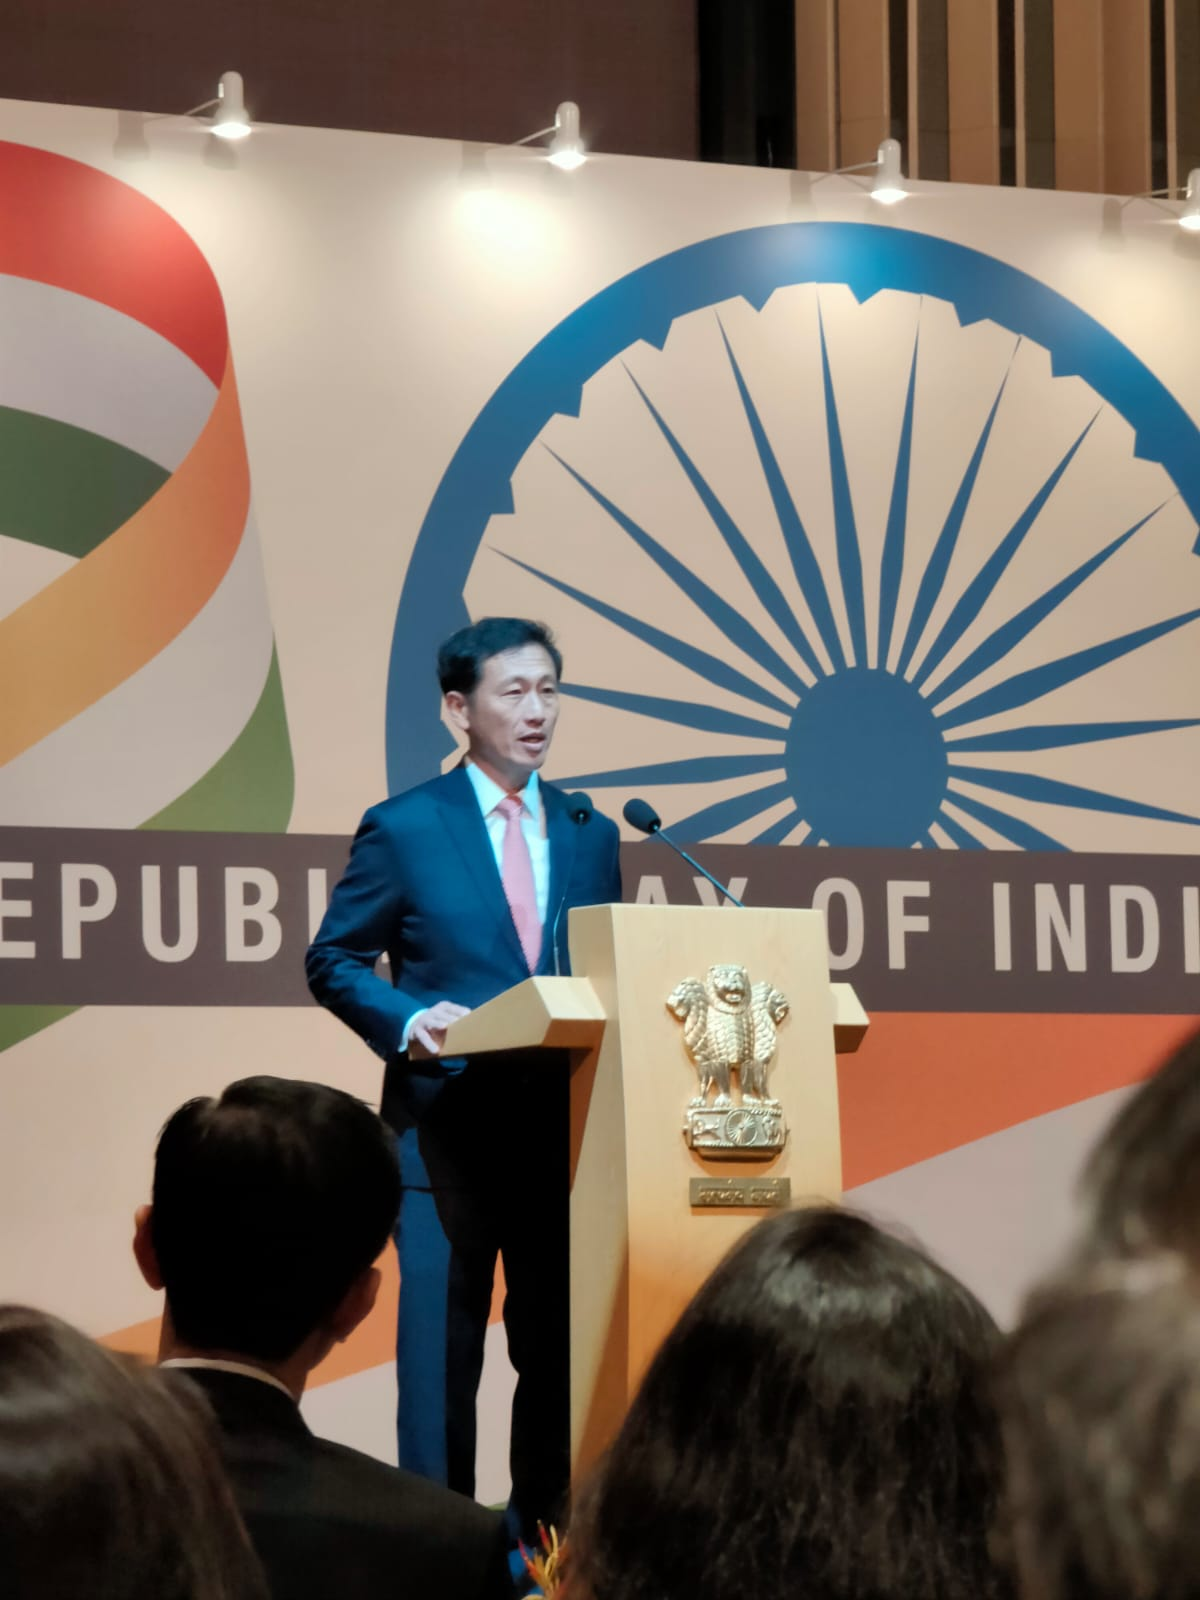 Minister Ong addressed the gathering, following which the National Anthem of India was played. Photo: Connected to India